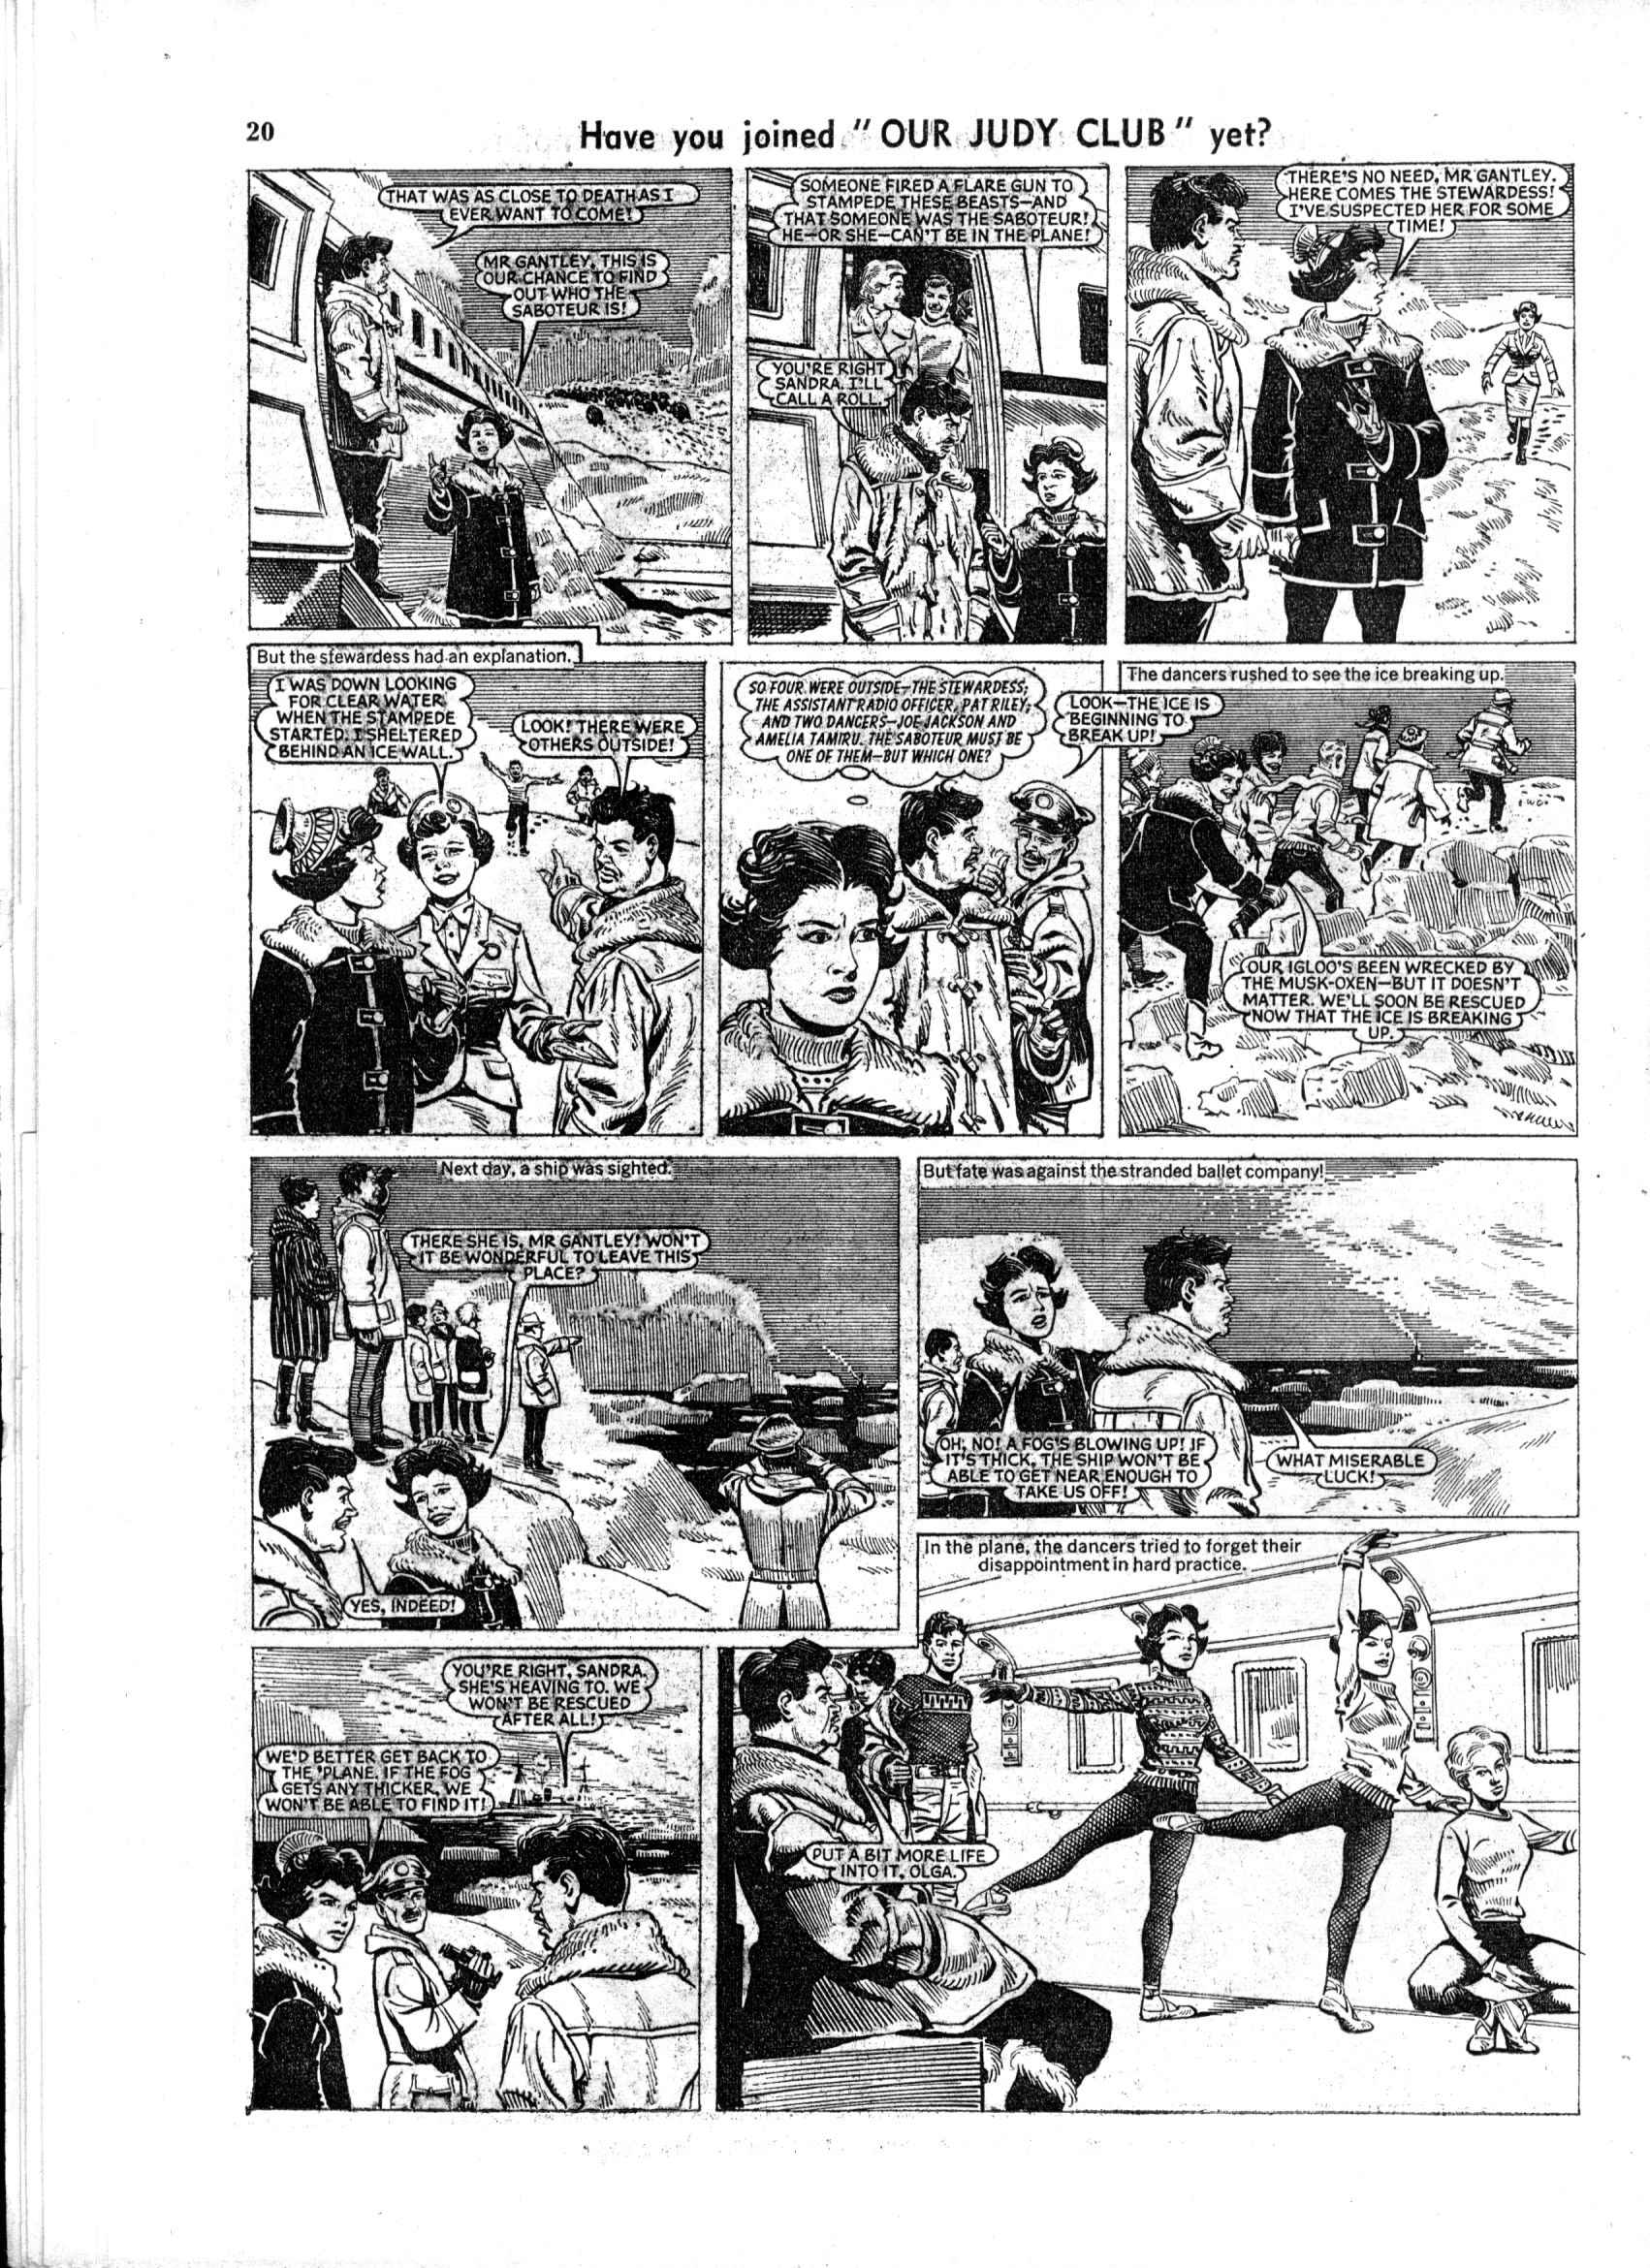 Read online Judy comic -  Issue #168 - 20